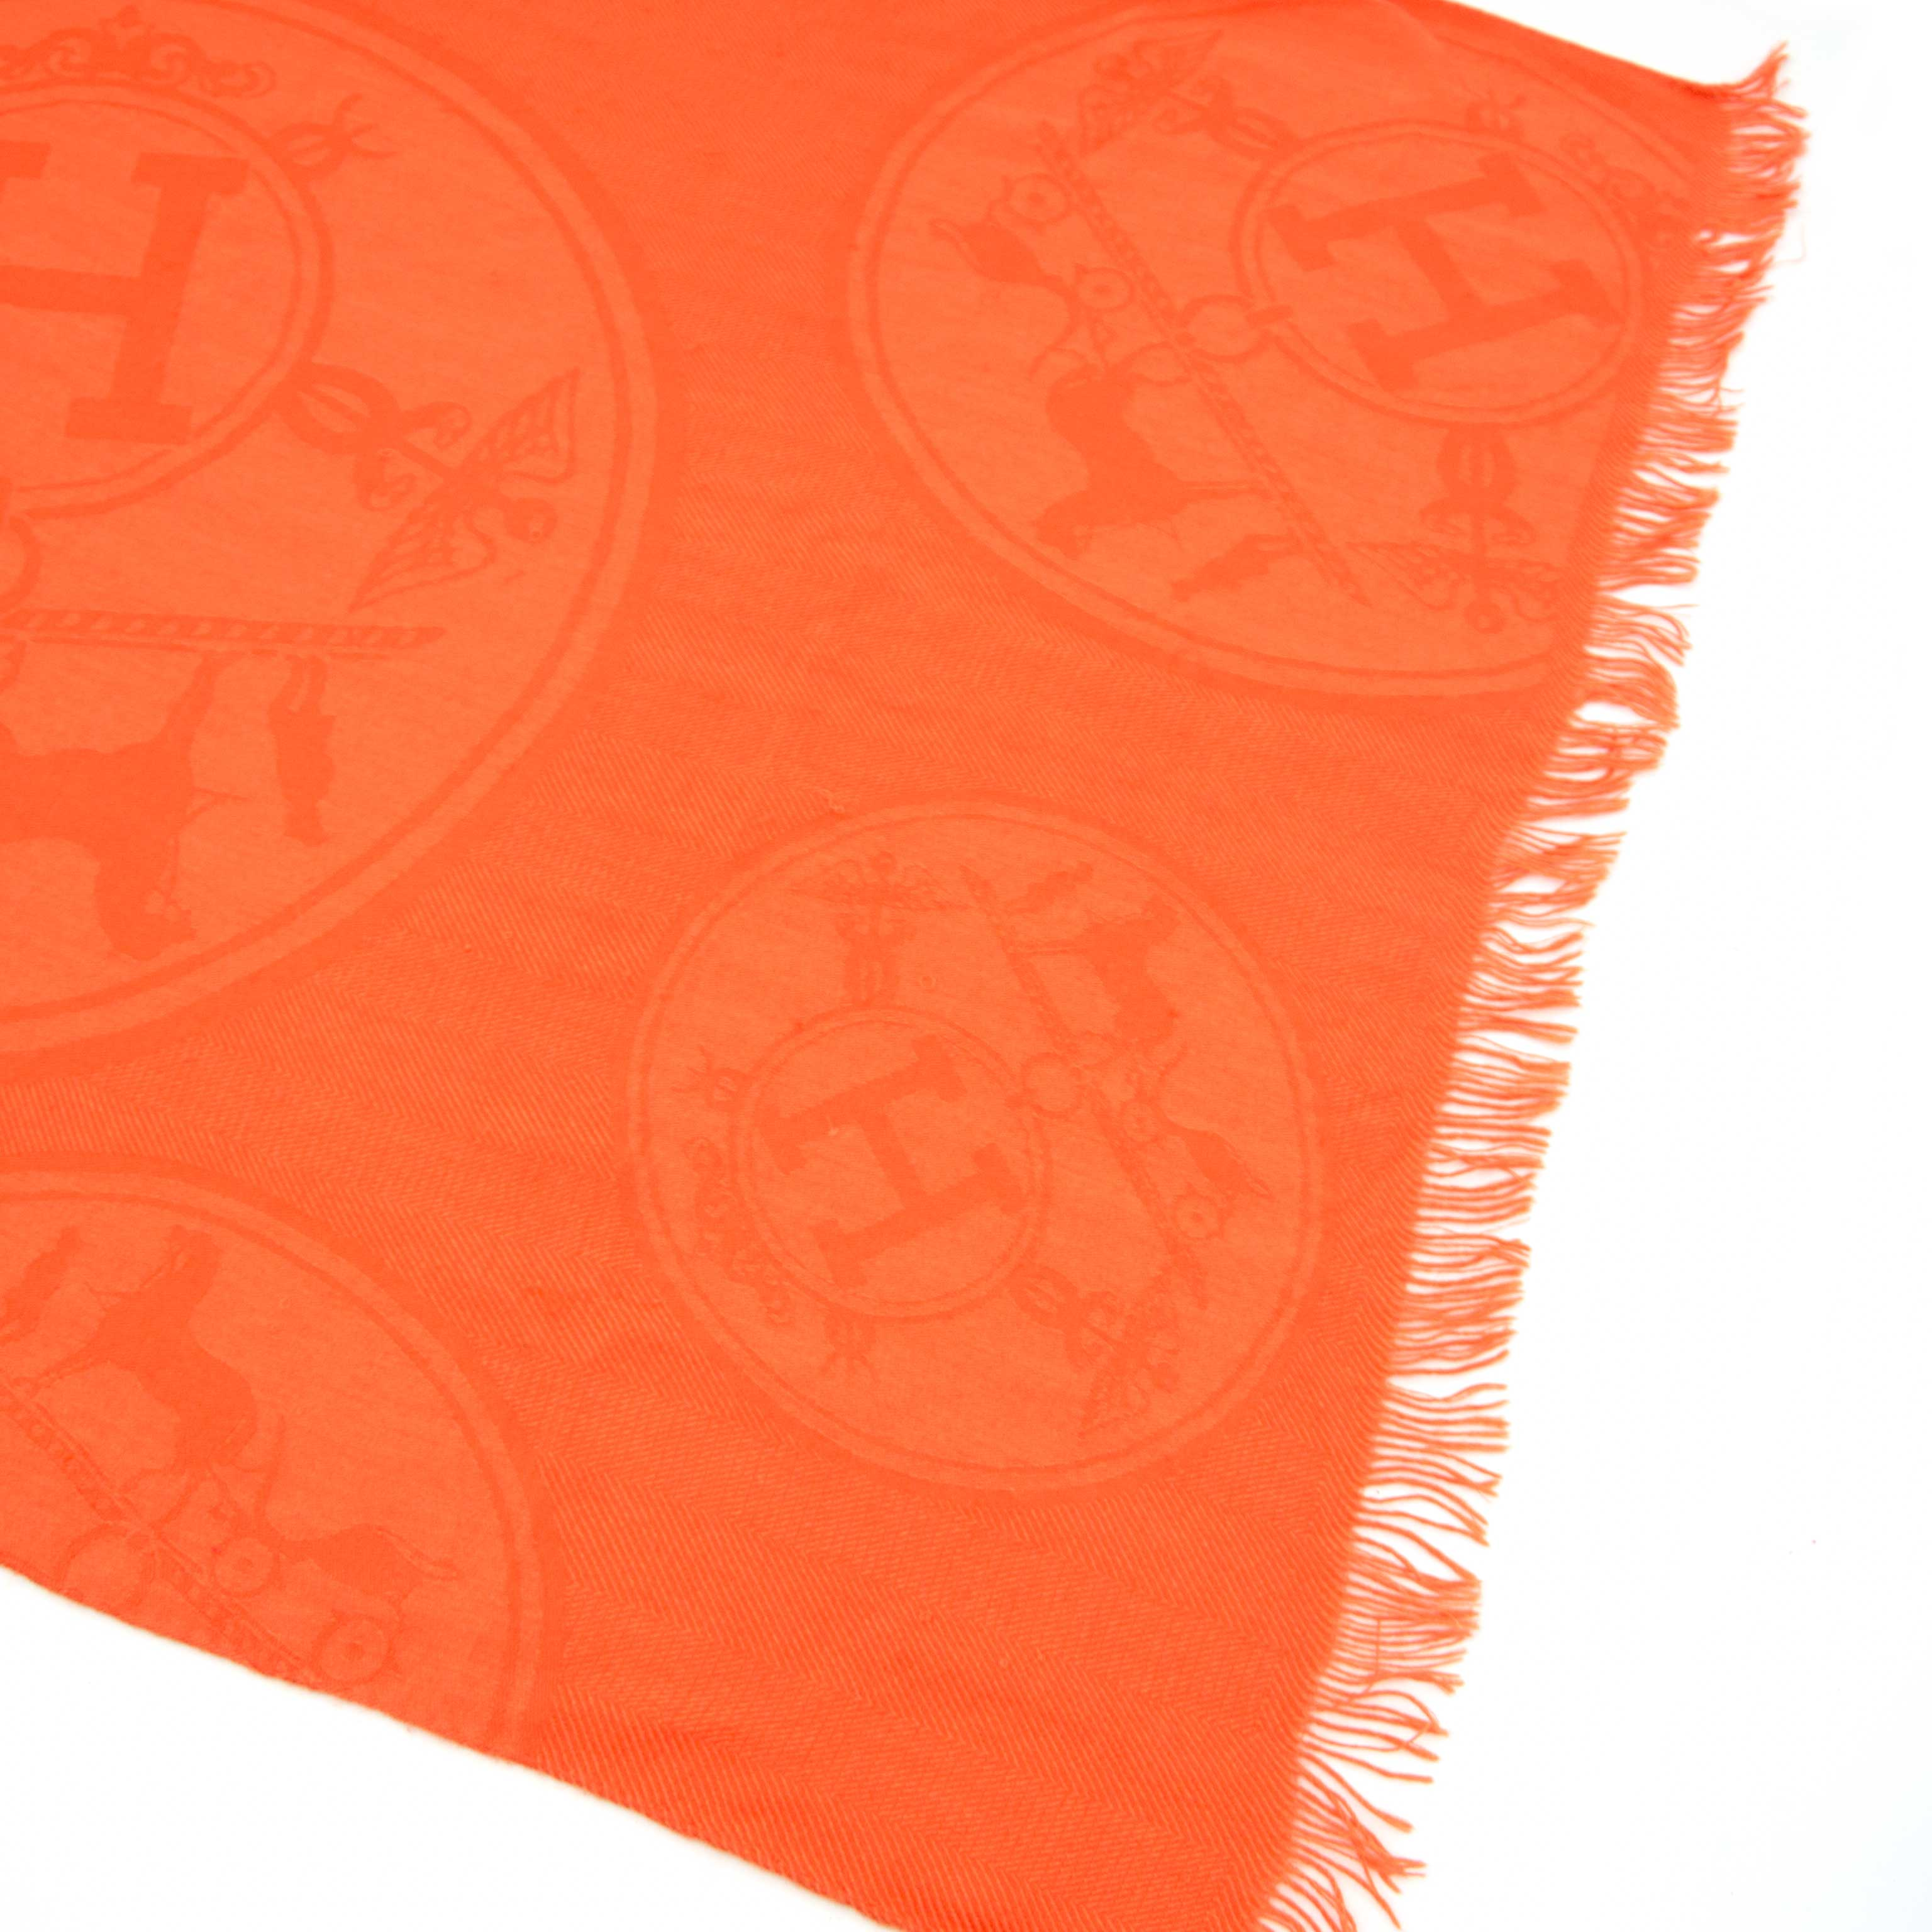 Are you looking for an auhtnetic Hermès Orange Cashmere Wrap Scarf